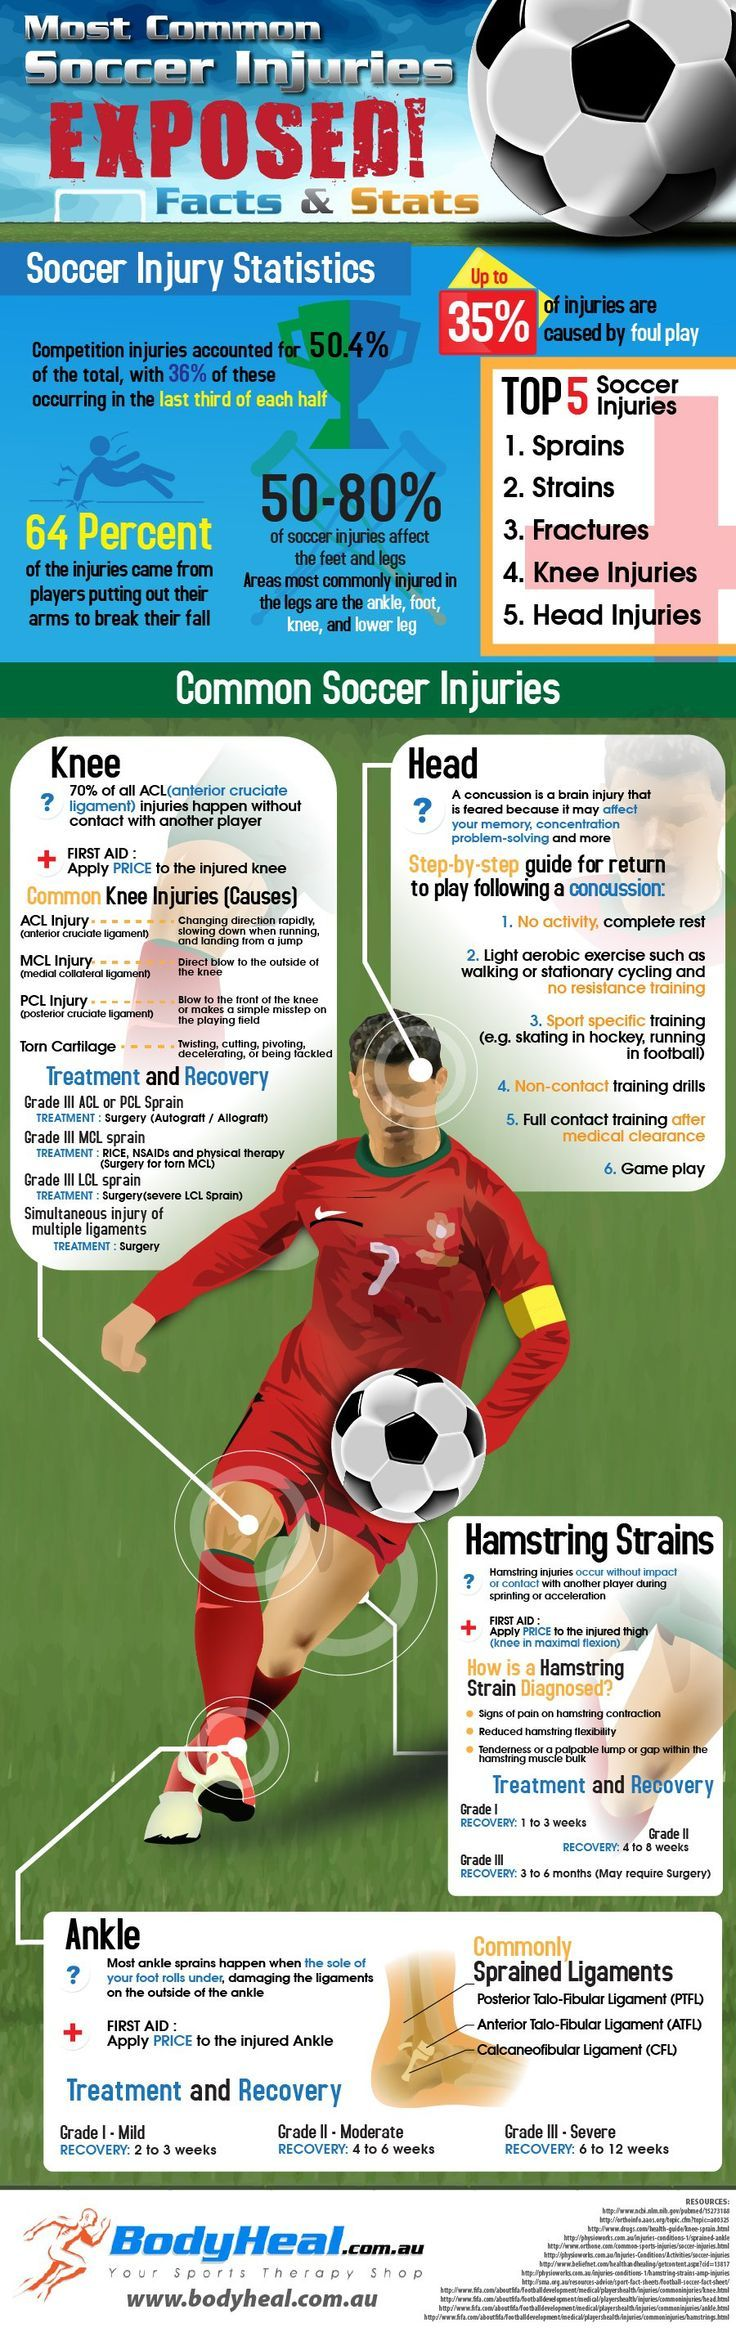 infographic on the top 5 common soccer injuries common soccer injuries, soccer injury care